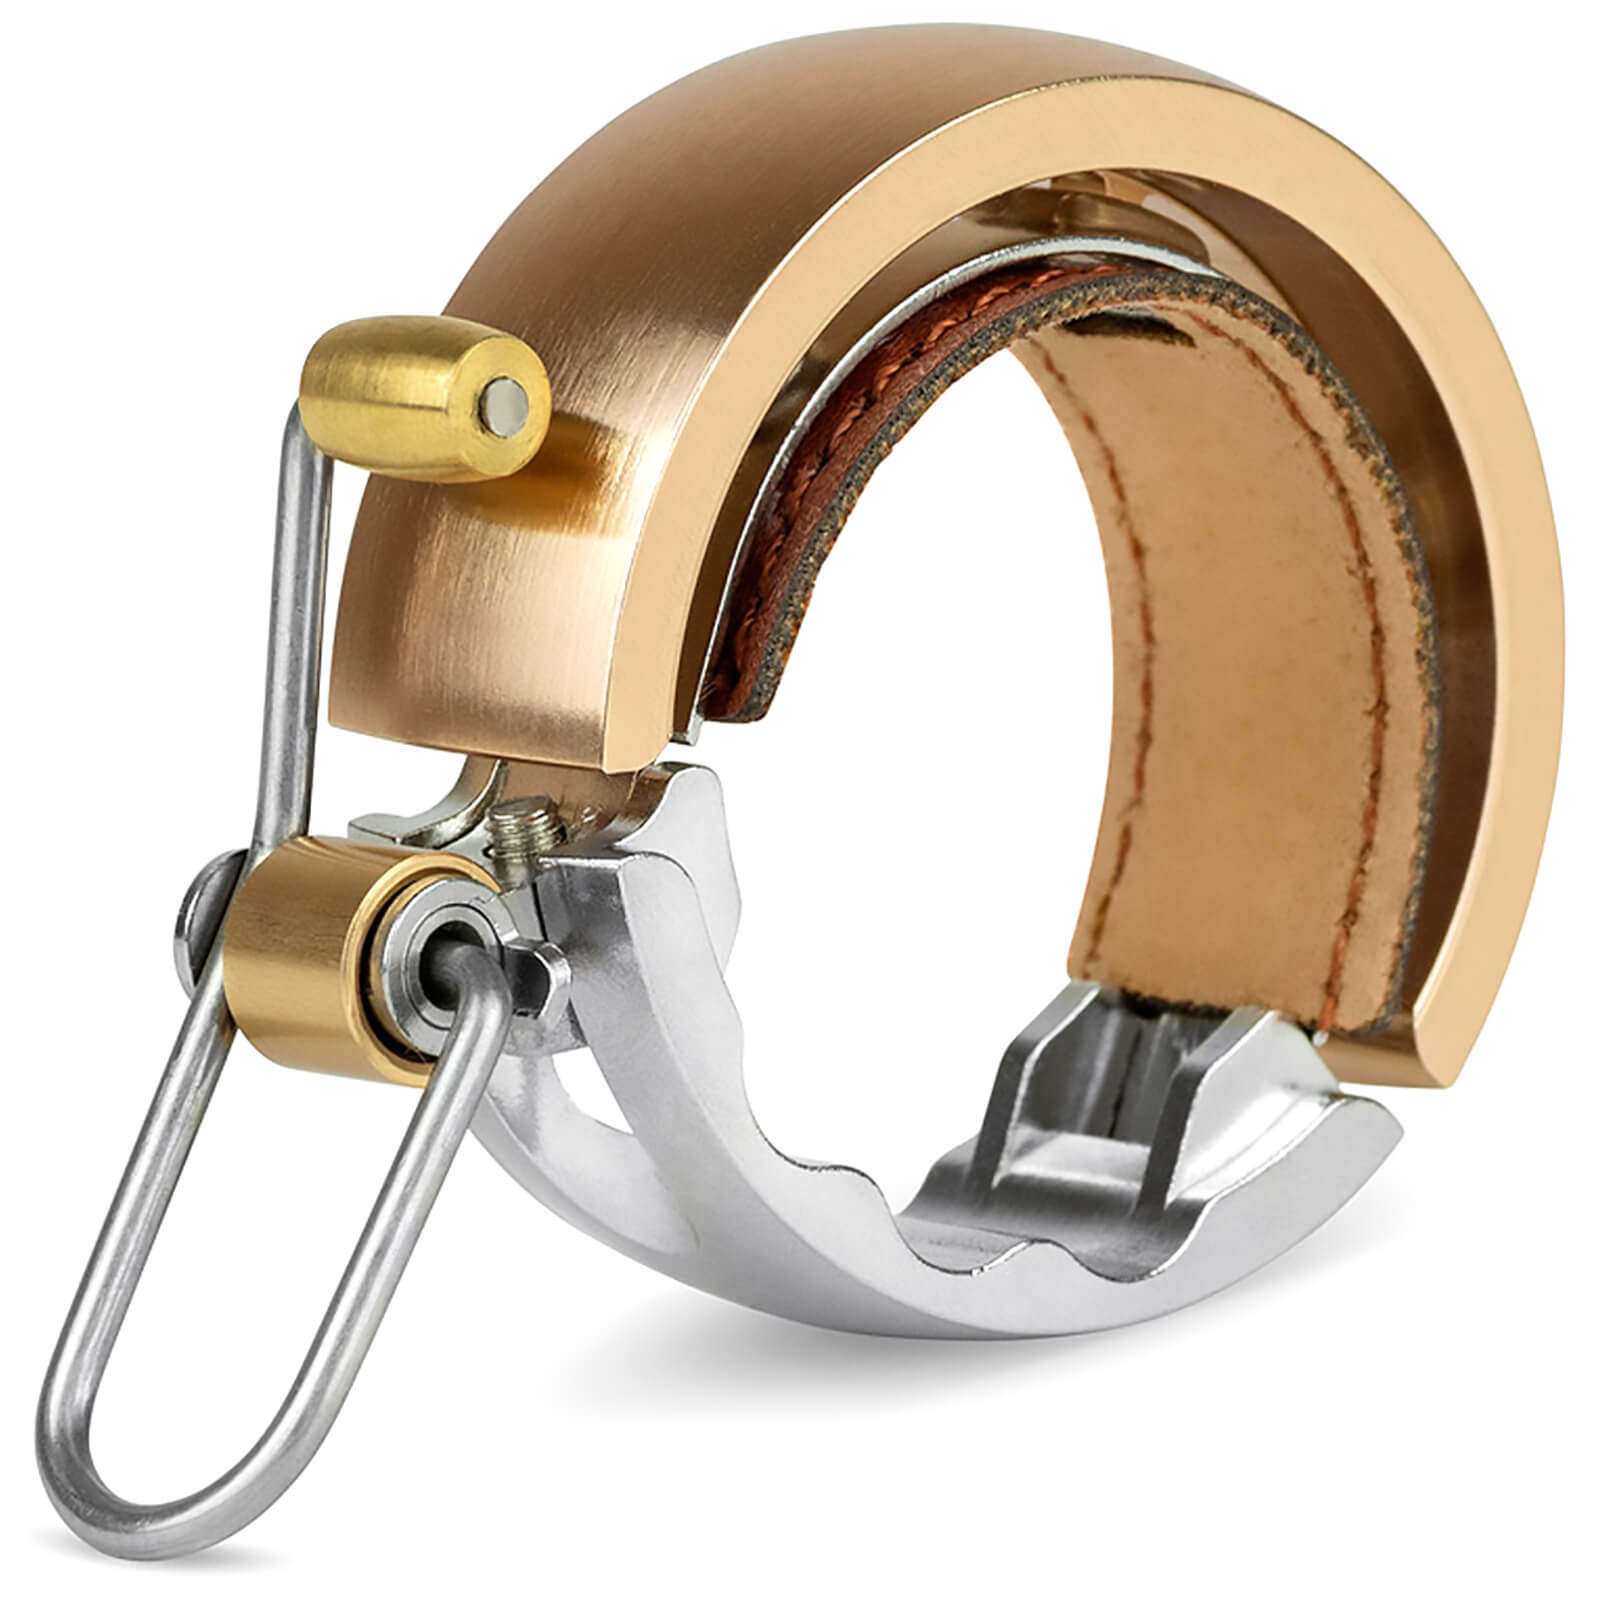 Knog Knog Oi Bell Luxe Small - Brass